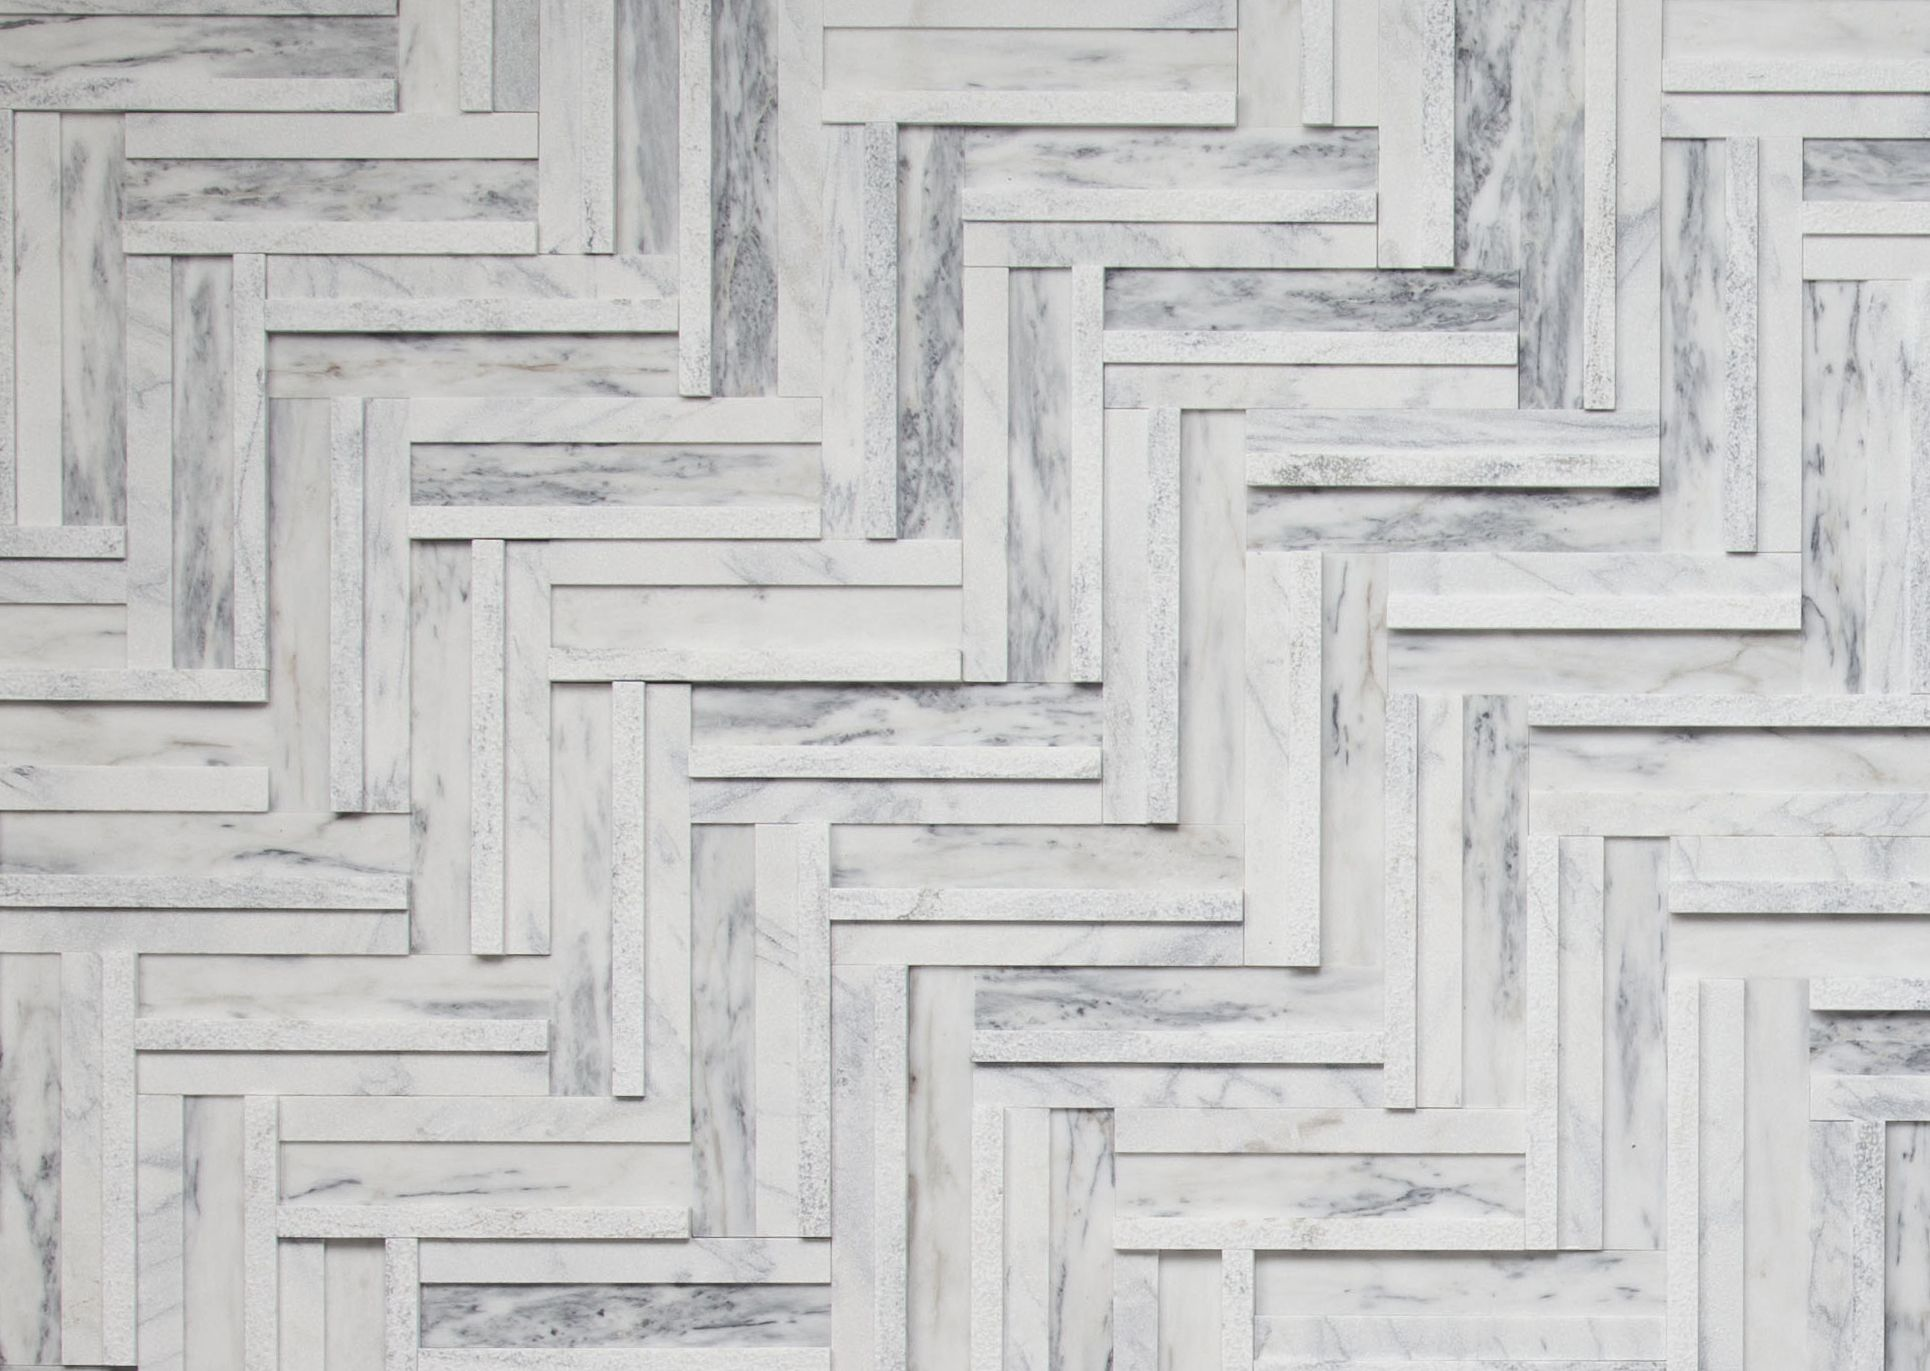 Venato Portugal Tile Herringbone Home Decor, Backsplash, Tile, Fireplace